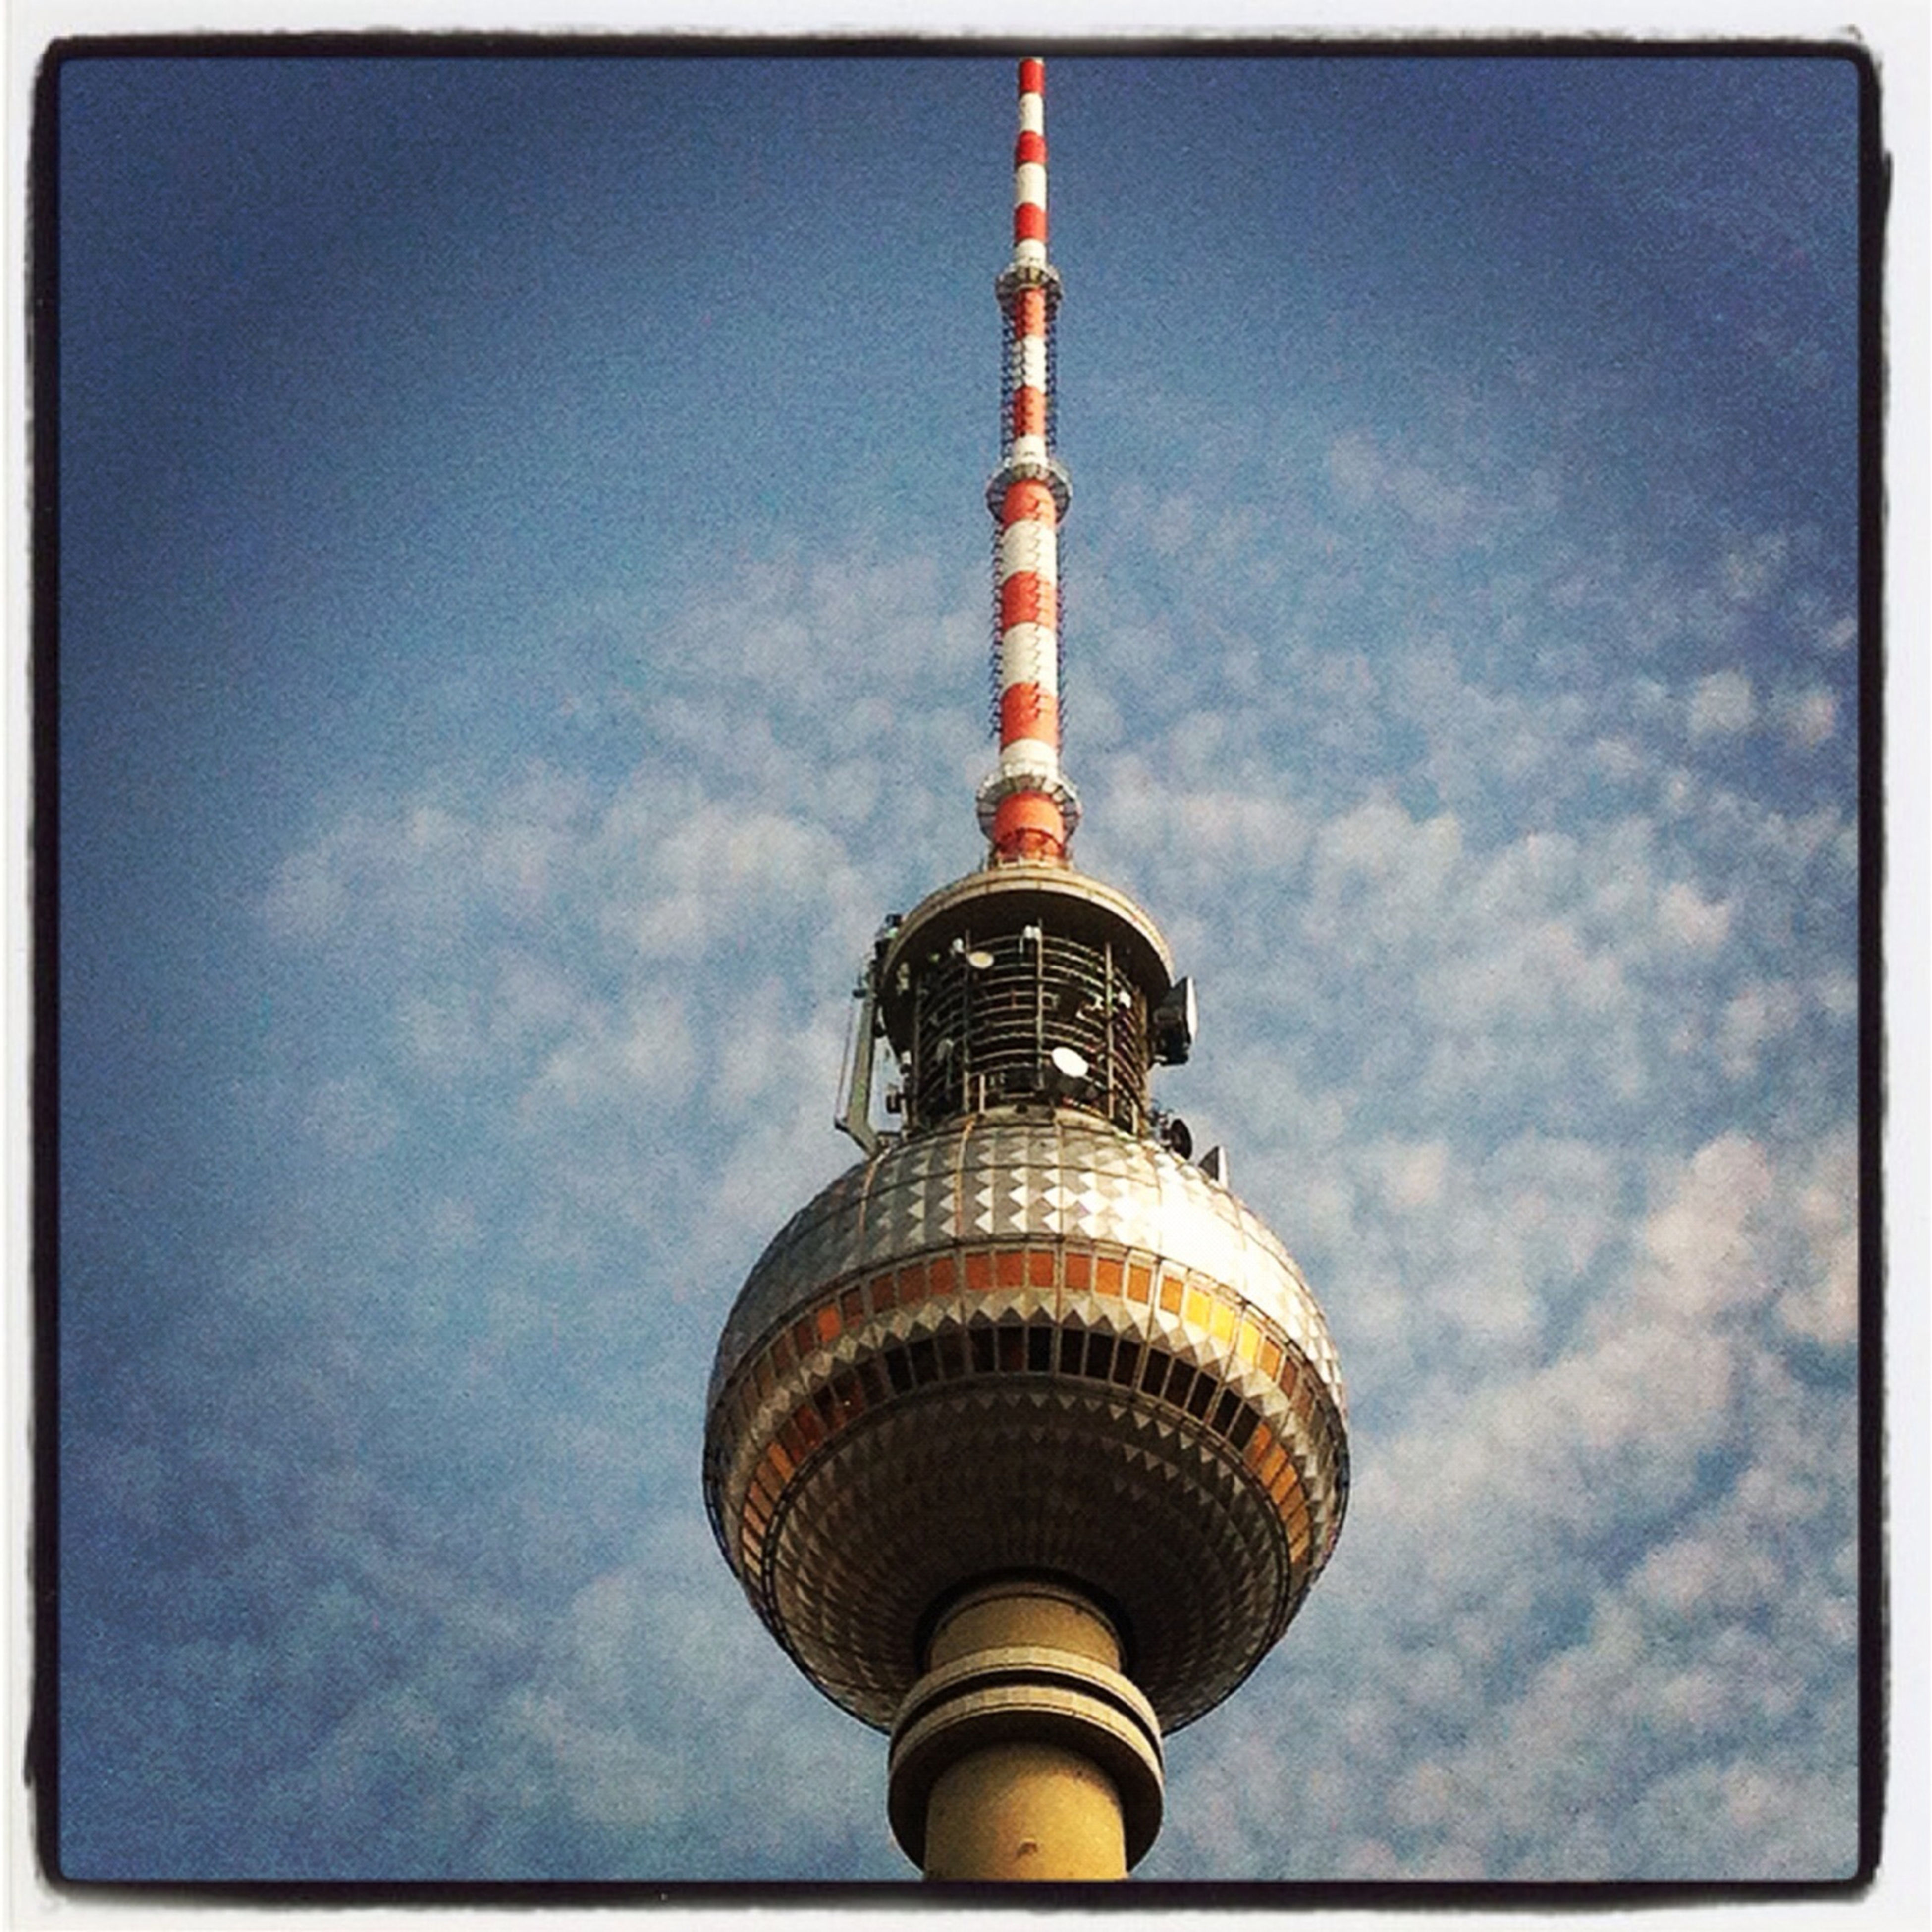 low angle view, architecture, communications tower, built structure, tower, tall - high, building exterior, transfer print, sky, international landmark, famous place, television tower, travel destinations, capital cities, spire, tourism, communication, fernsehturm, culture, travel